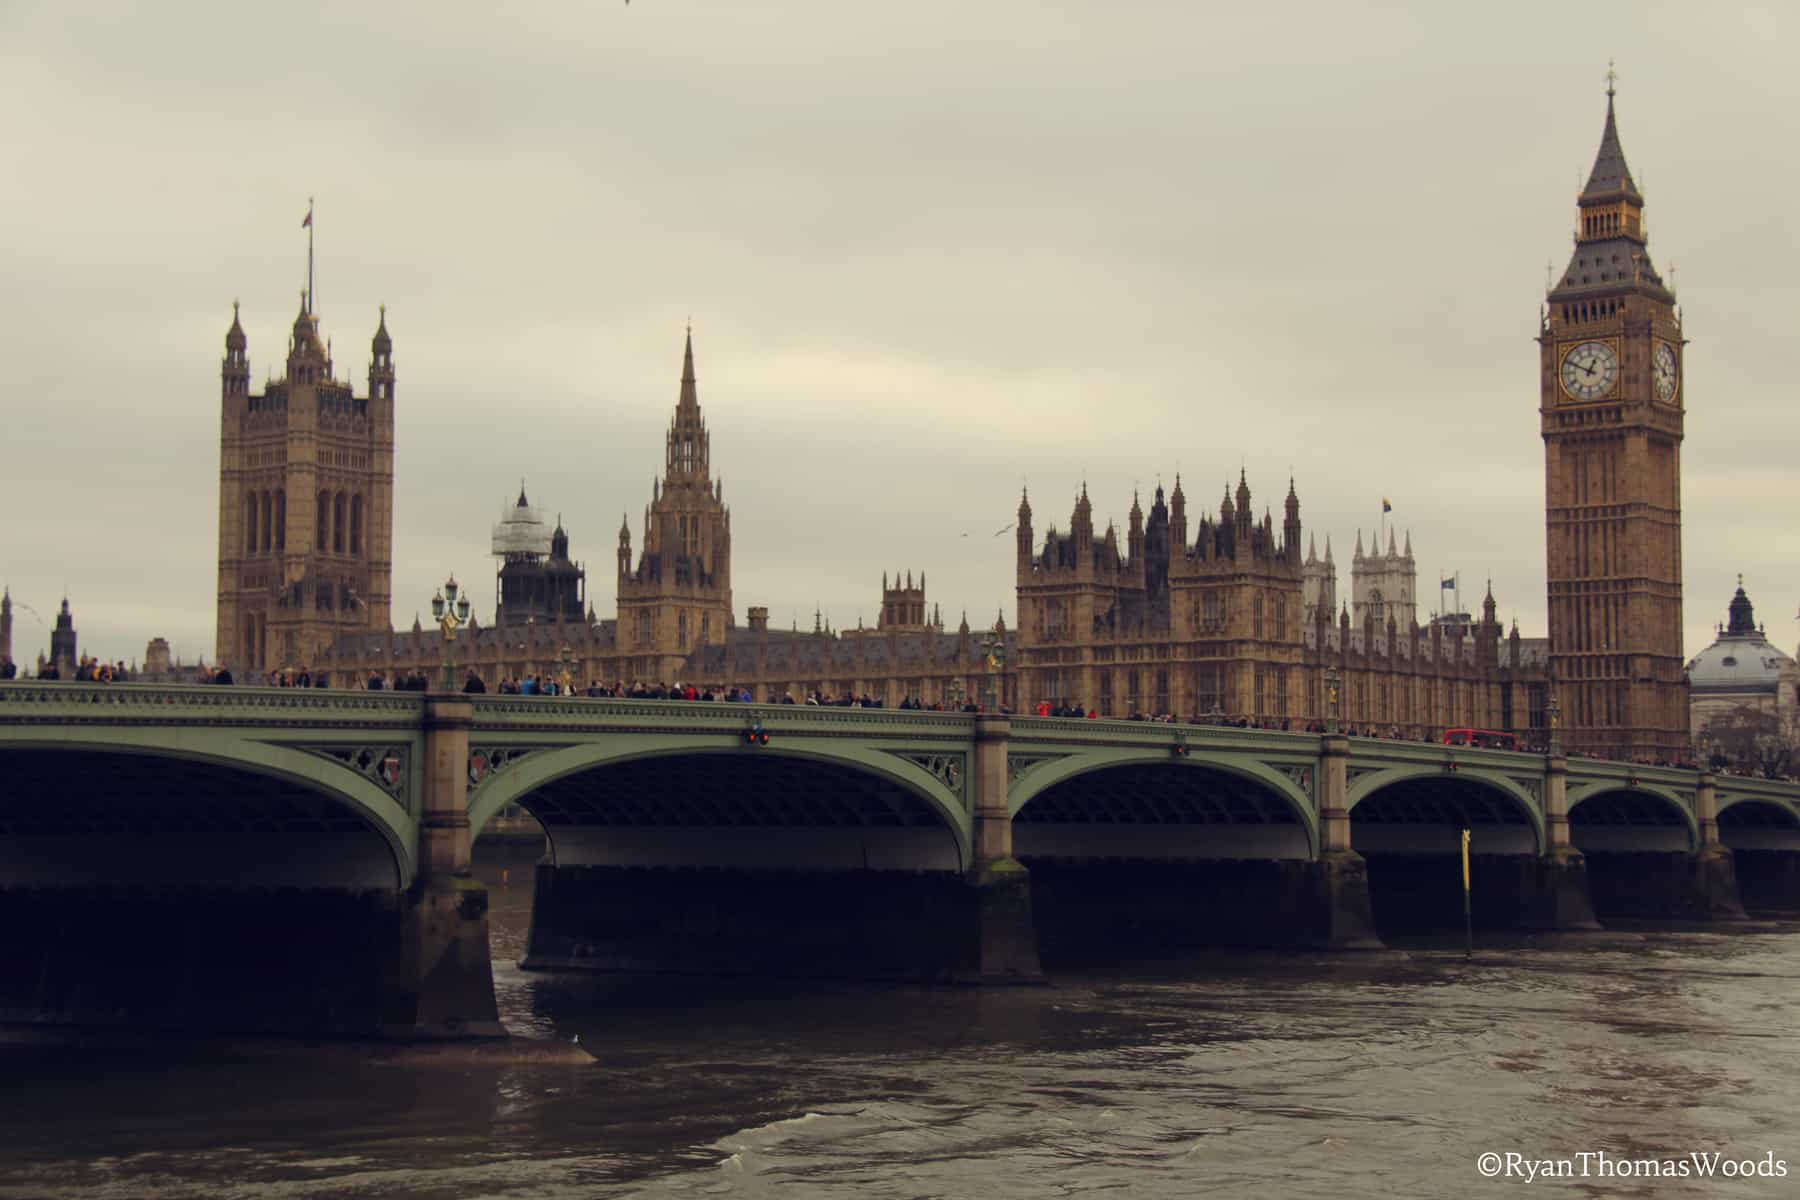 Parliament Buildings & Big Ben, London, England